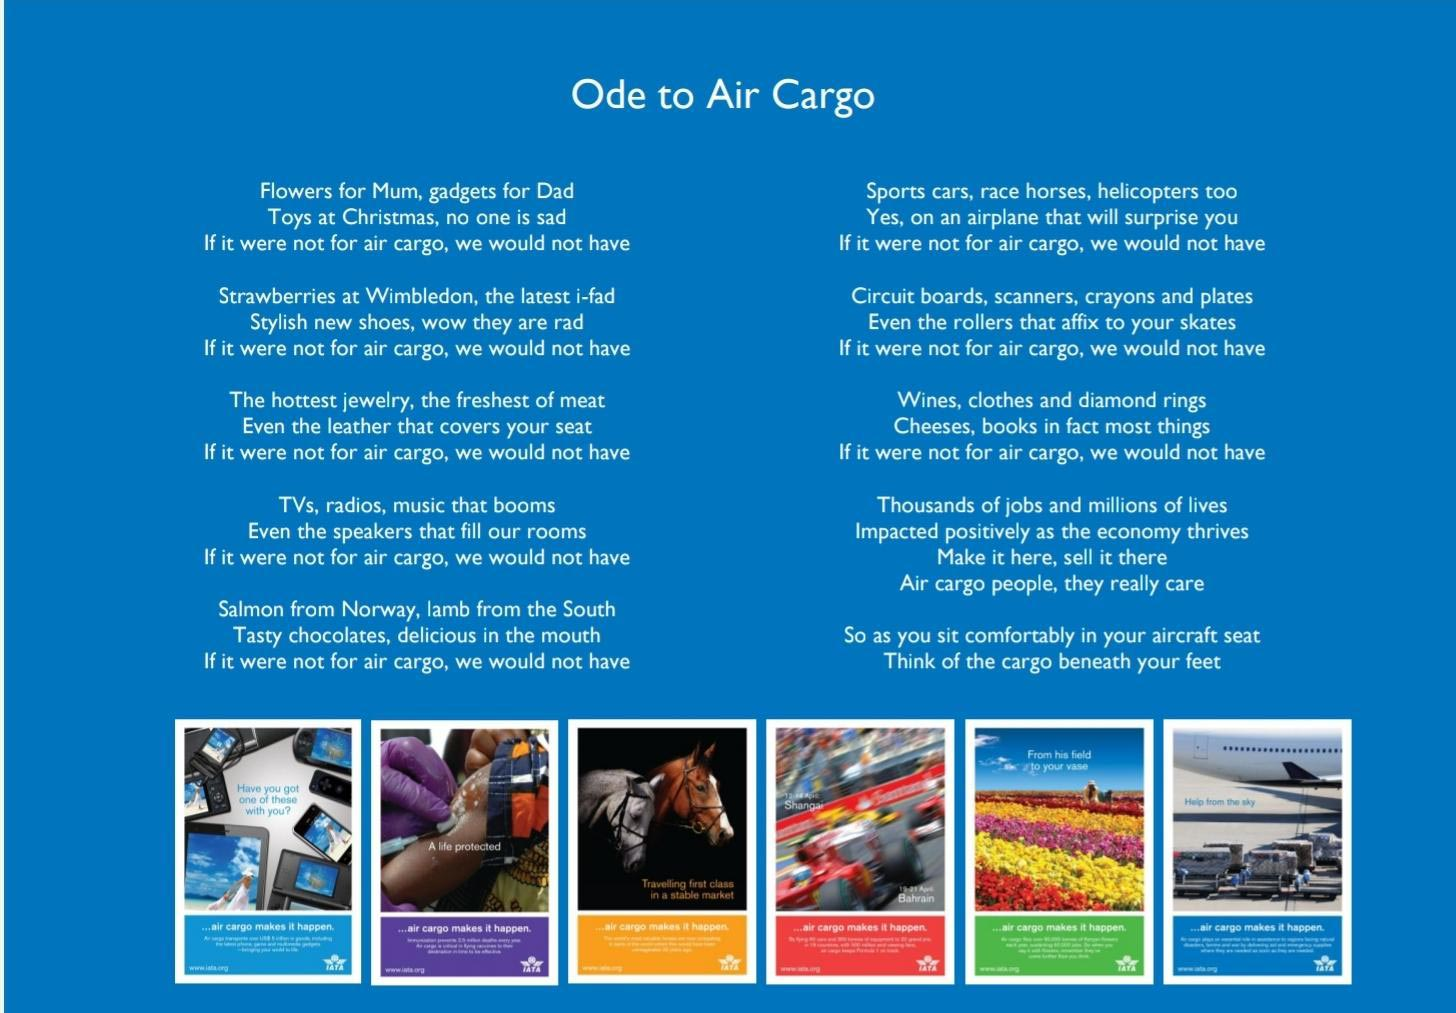 Ode to Air Cargo